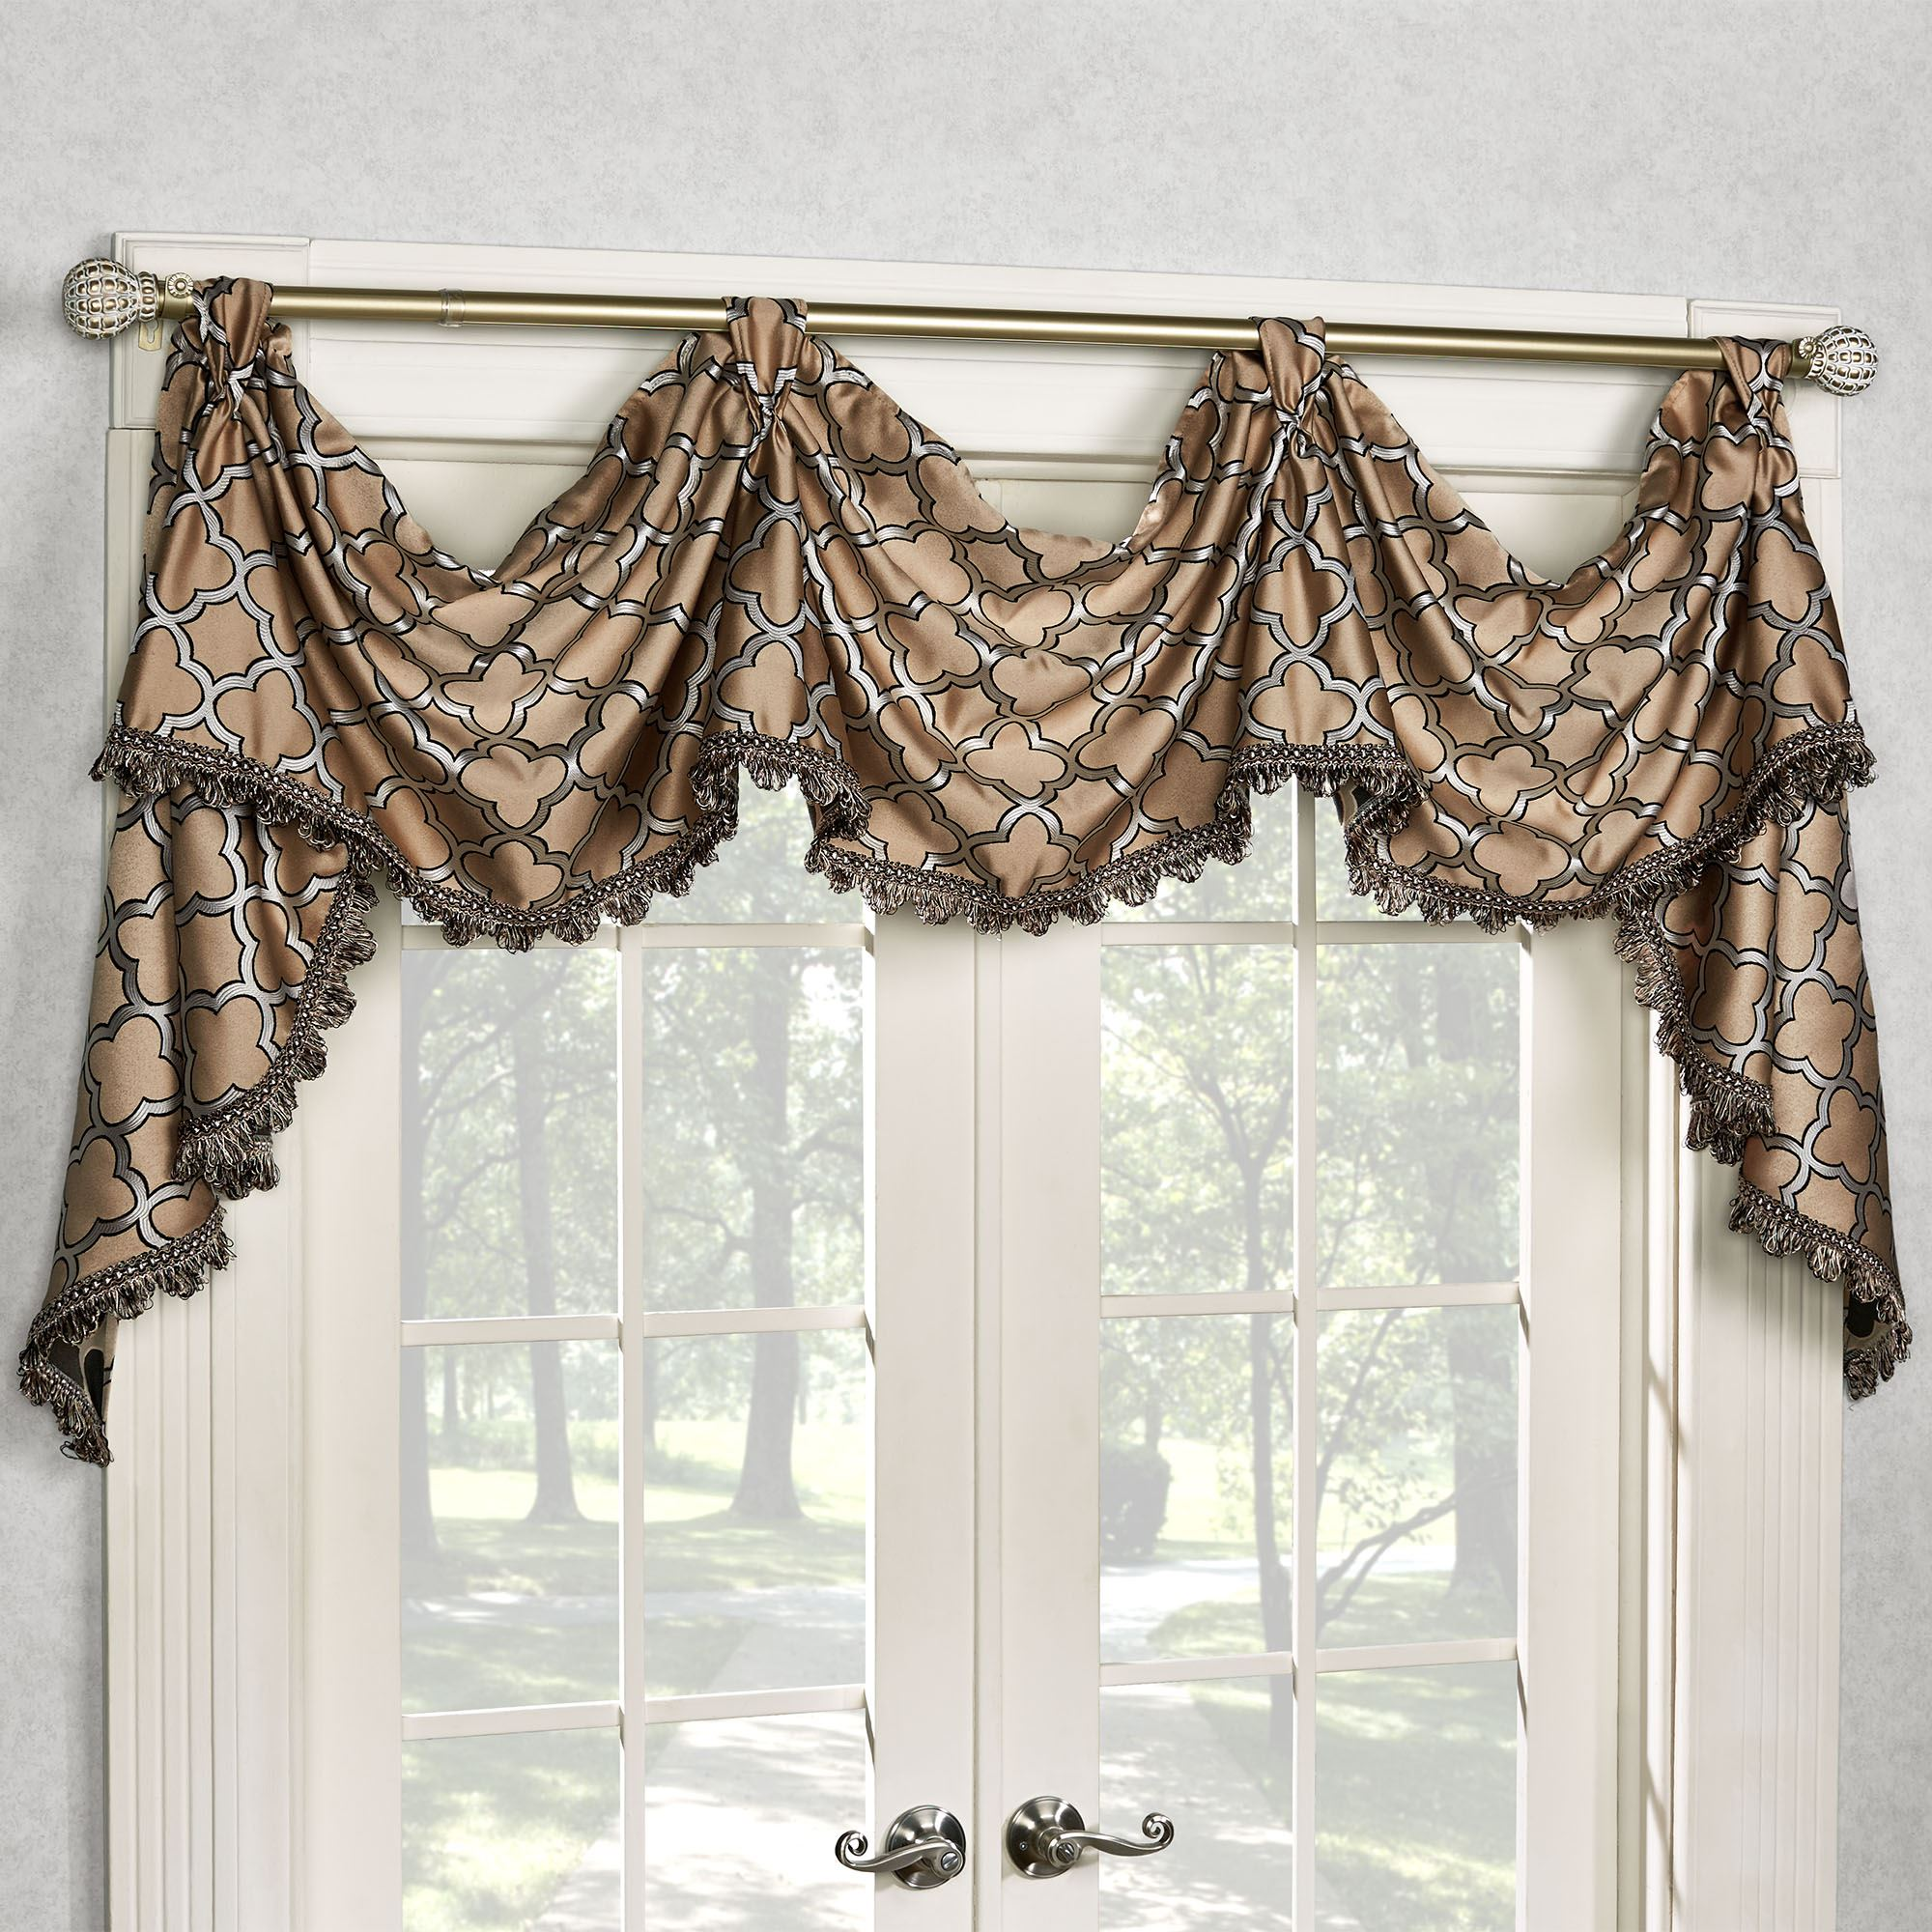 Fandangle Quatrefoil Tab Top Victory Valance